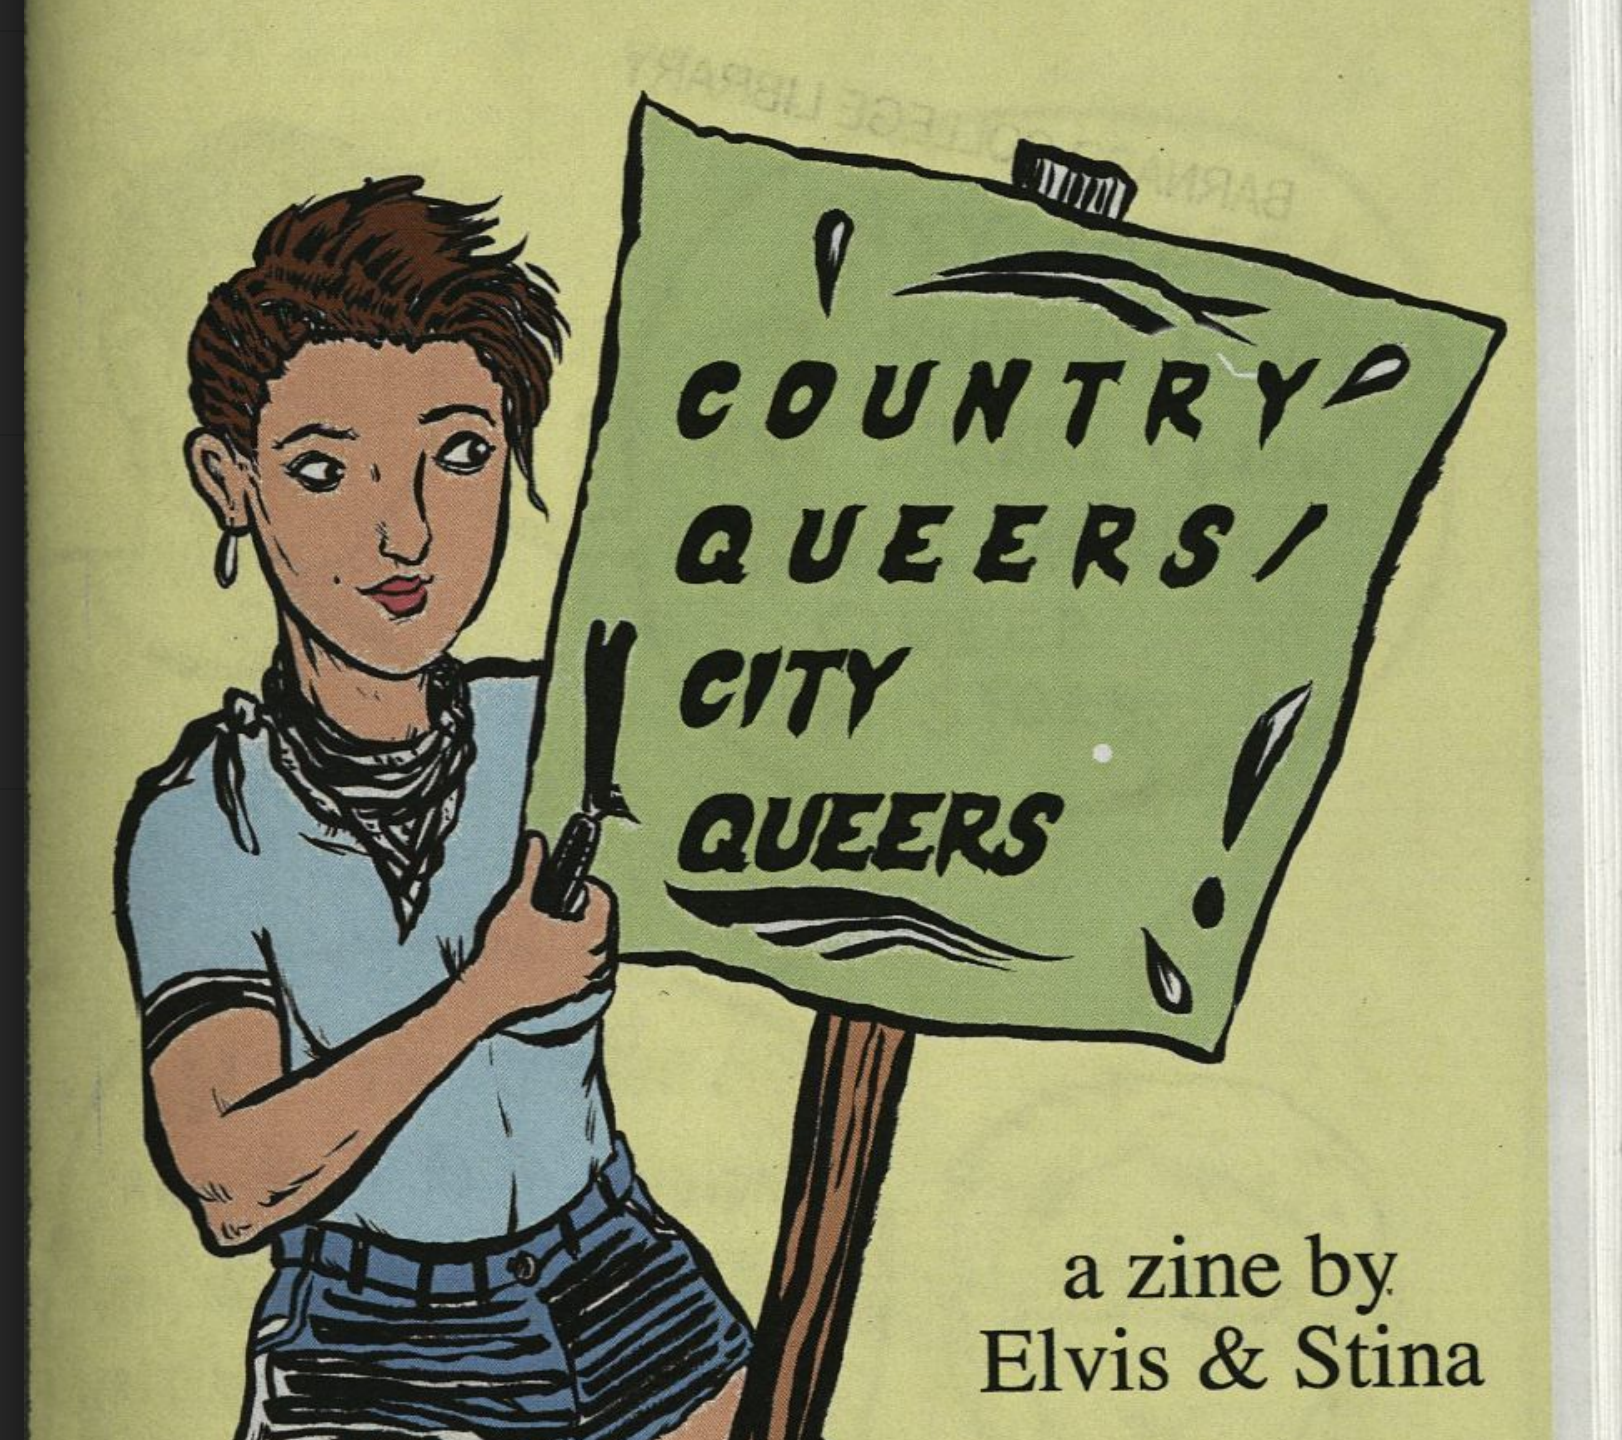 zine cover detail: Country Queers, City Queers. Cartoon depiction of queer person holding a sign with the title on a yellow background.